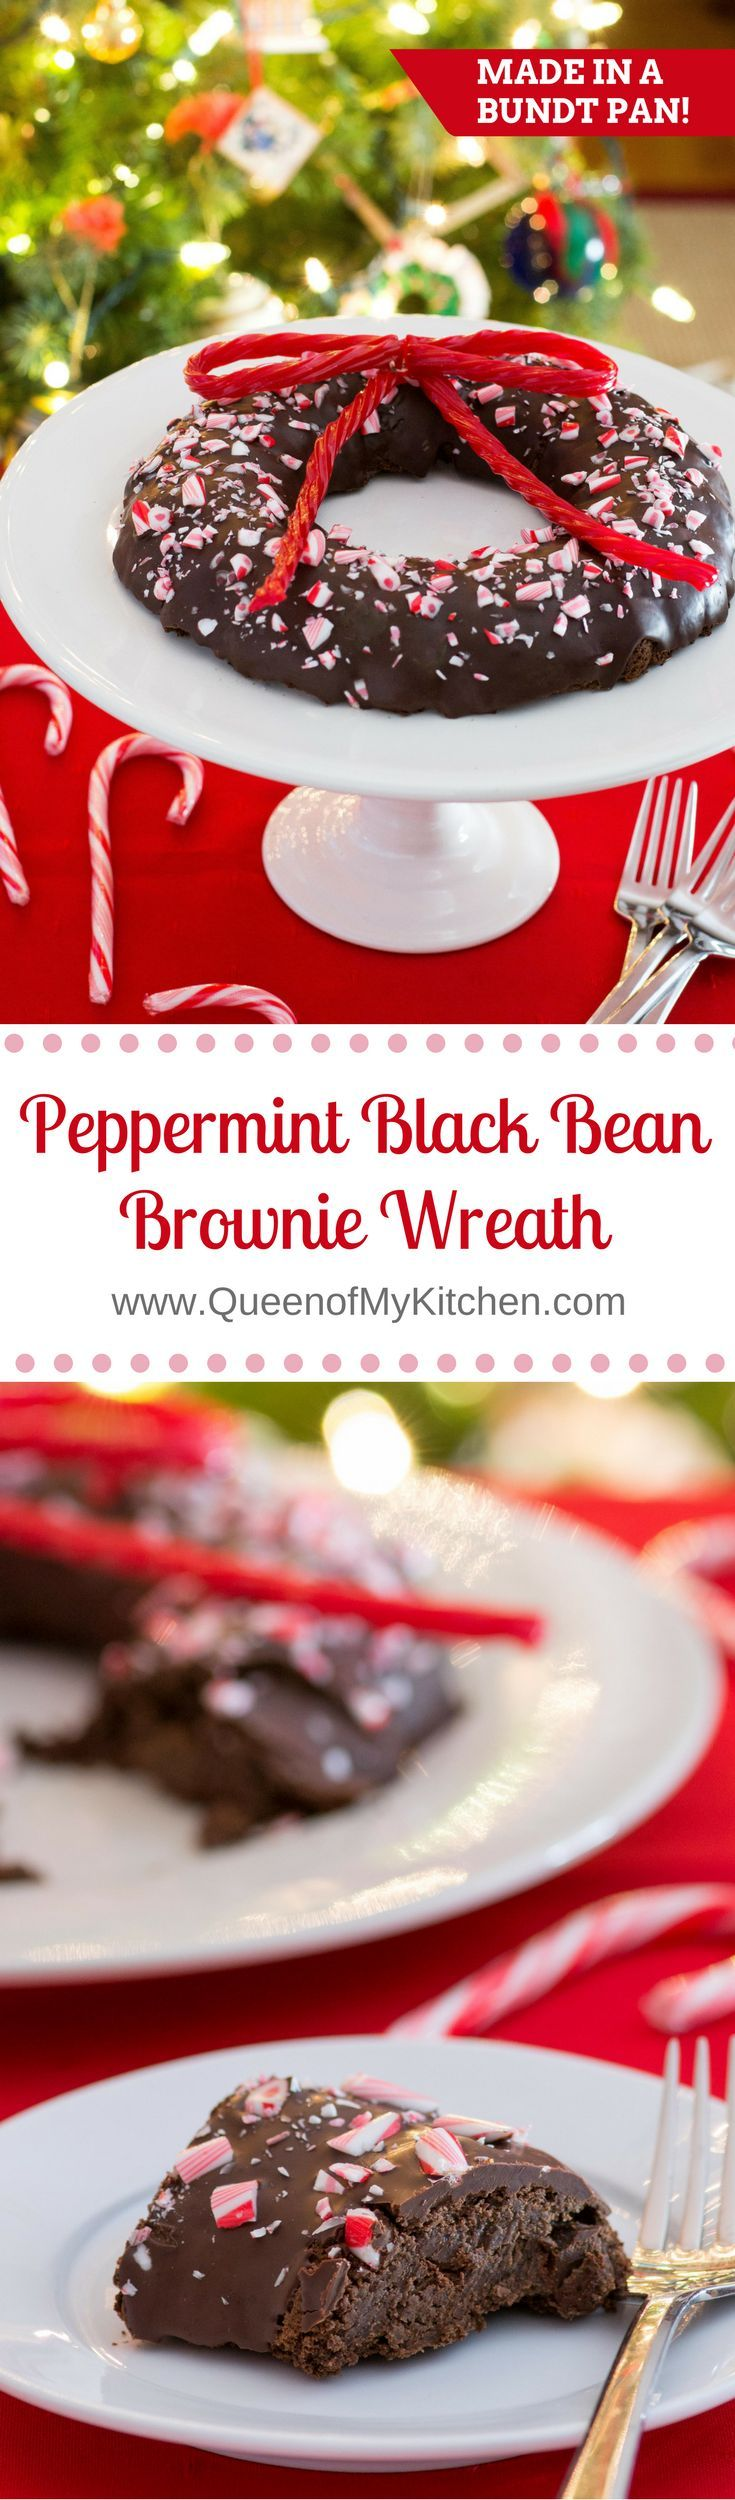 eppermint Black Bean Brownie Wreath - Use a standard bundt pan to make this fun, festive, and slightly healthier holiday dessert with classic Yuletide flavor! | QueenofMyKitchen.com